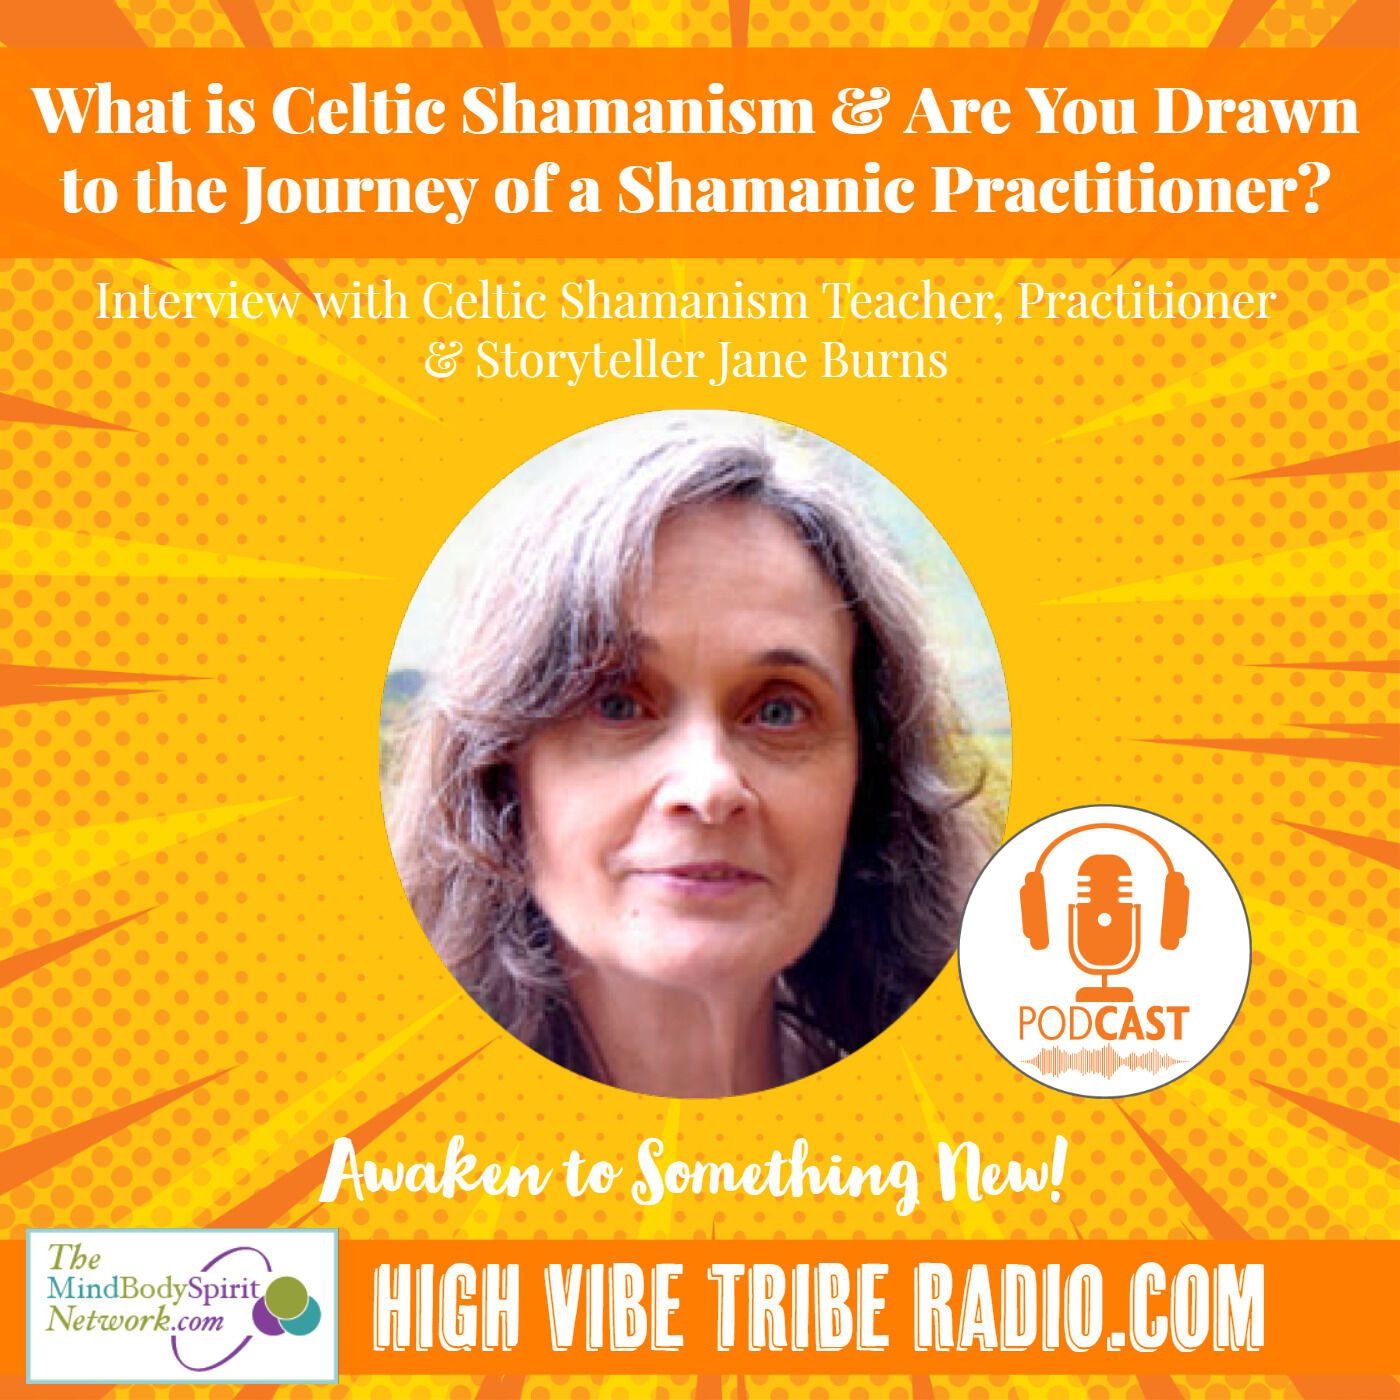 What is Celtic Shamanism? Interview with Jane Burns, Shamanic Trainer, Practitioner & Storyteller